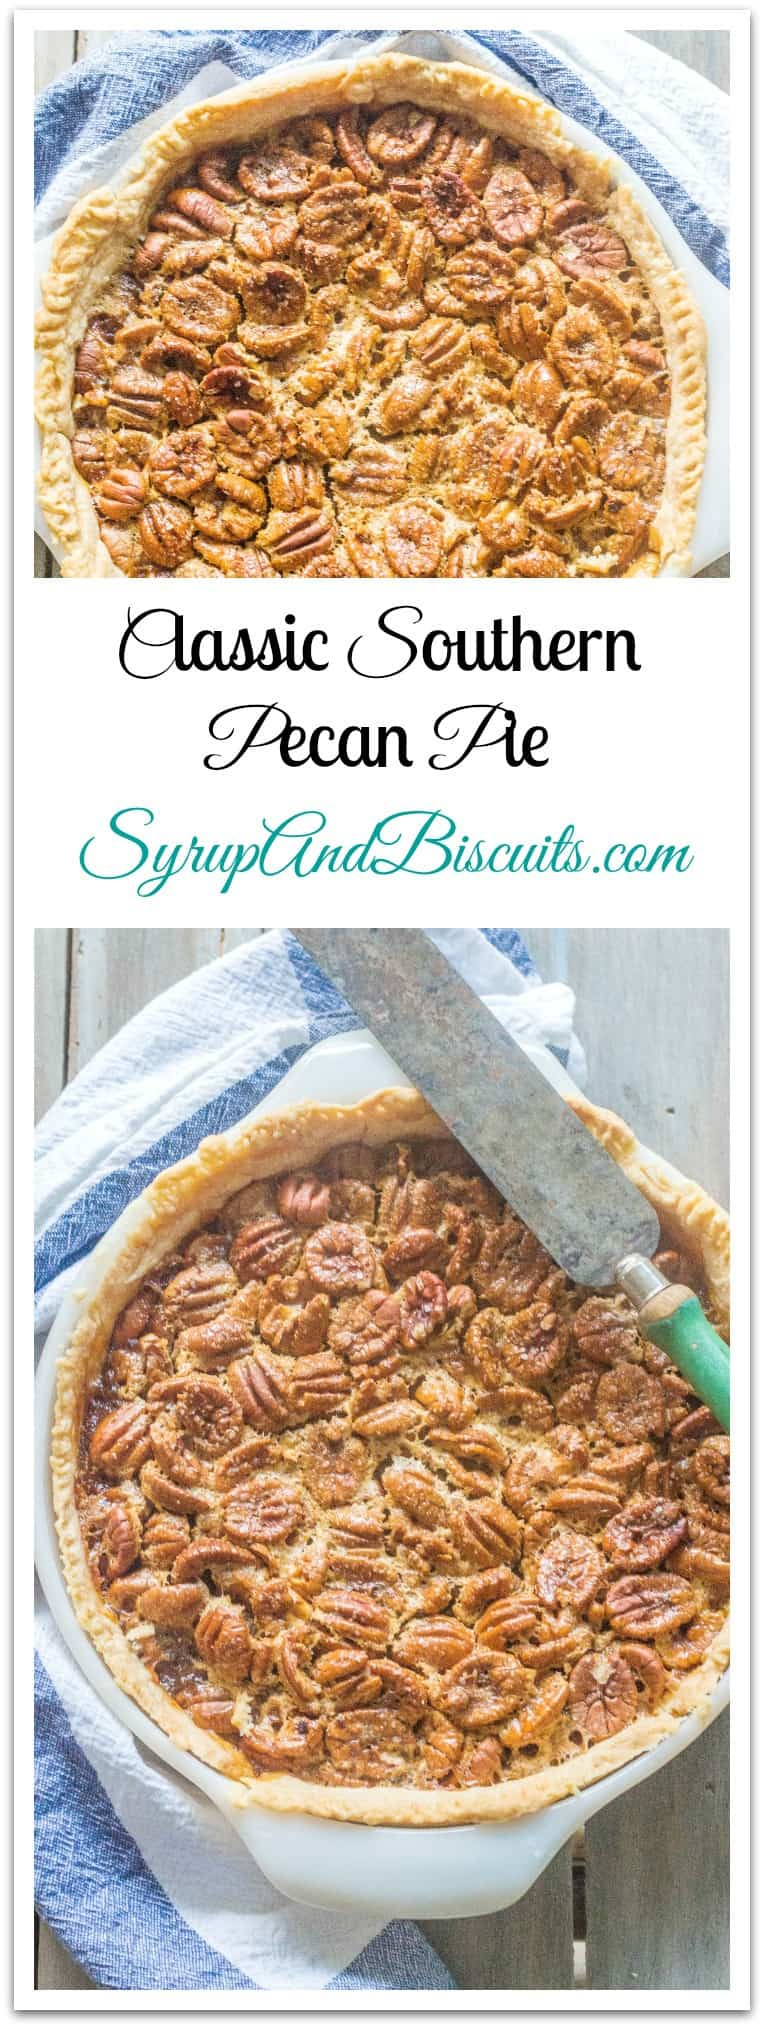 Classic Southern Pecan Pie is a favorite pie made with pecans that are baked in a syrupy filling. #PecanPie #SouthernPie